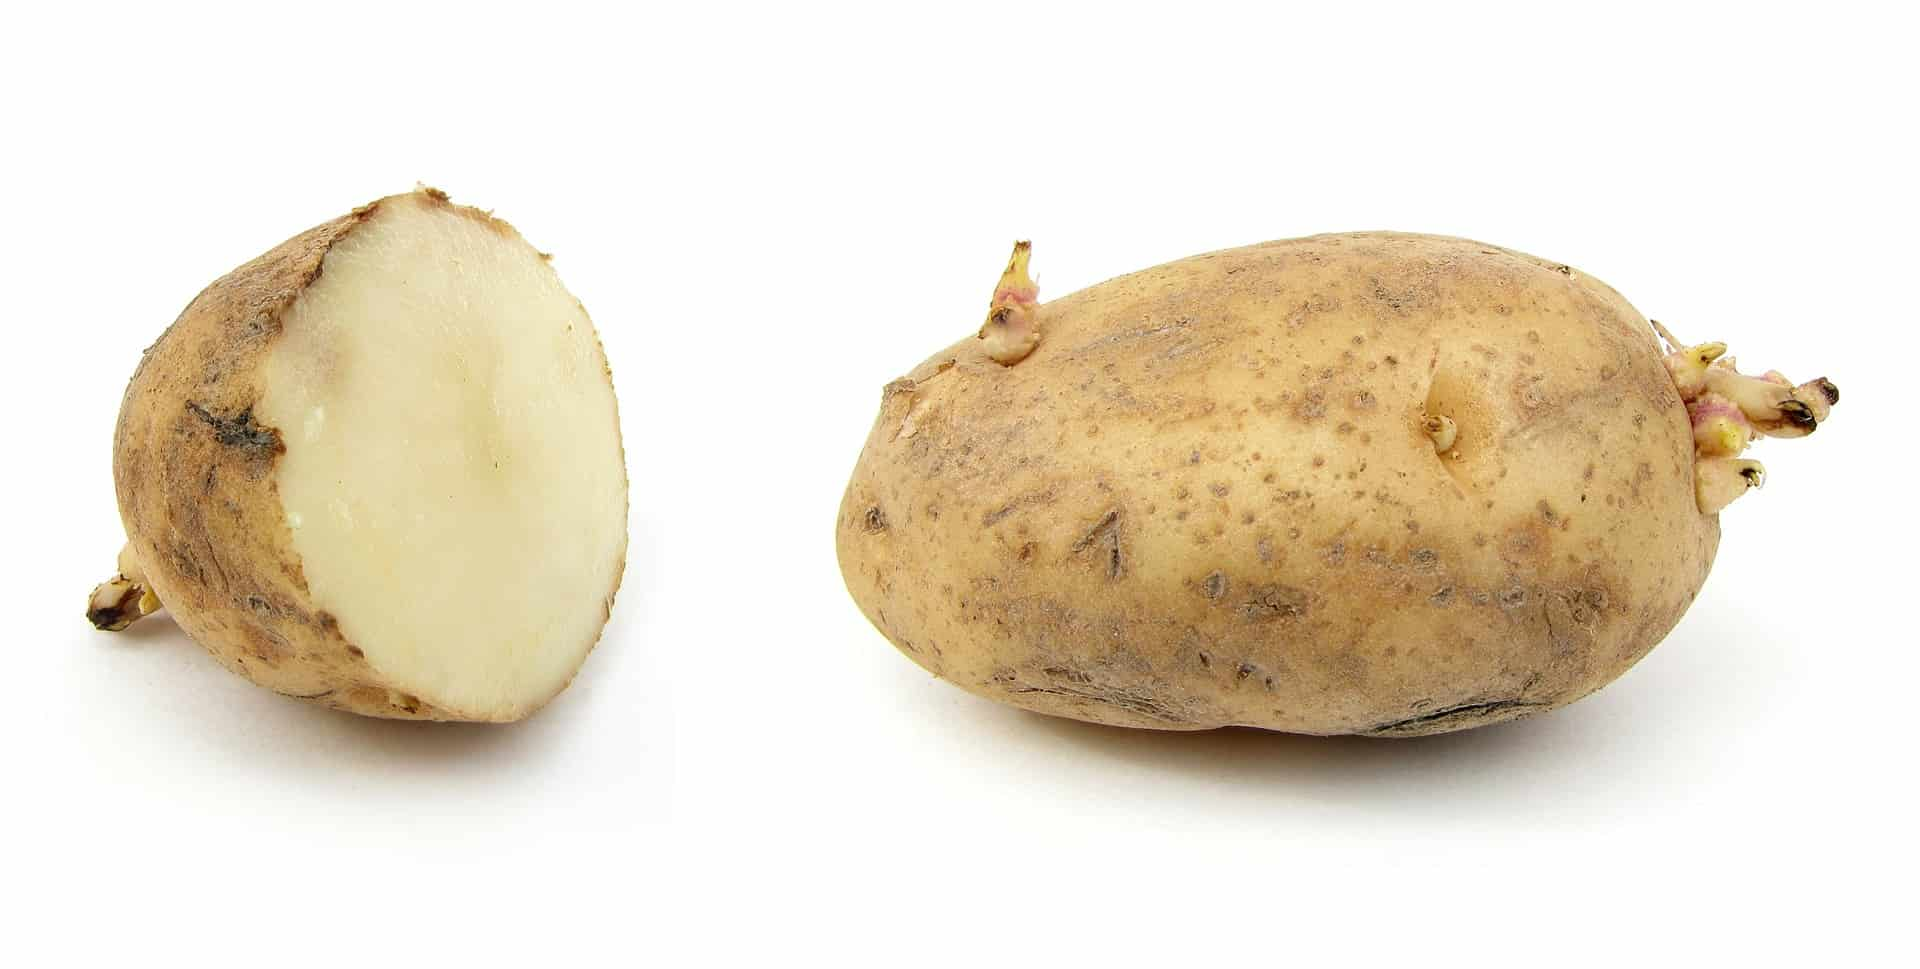 Potato to Cure Warts